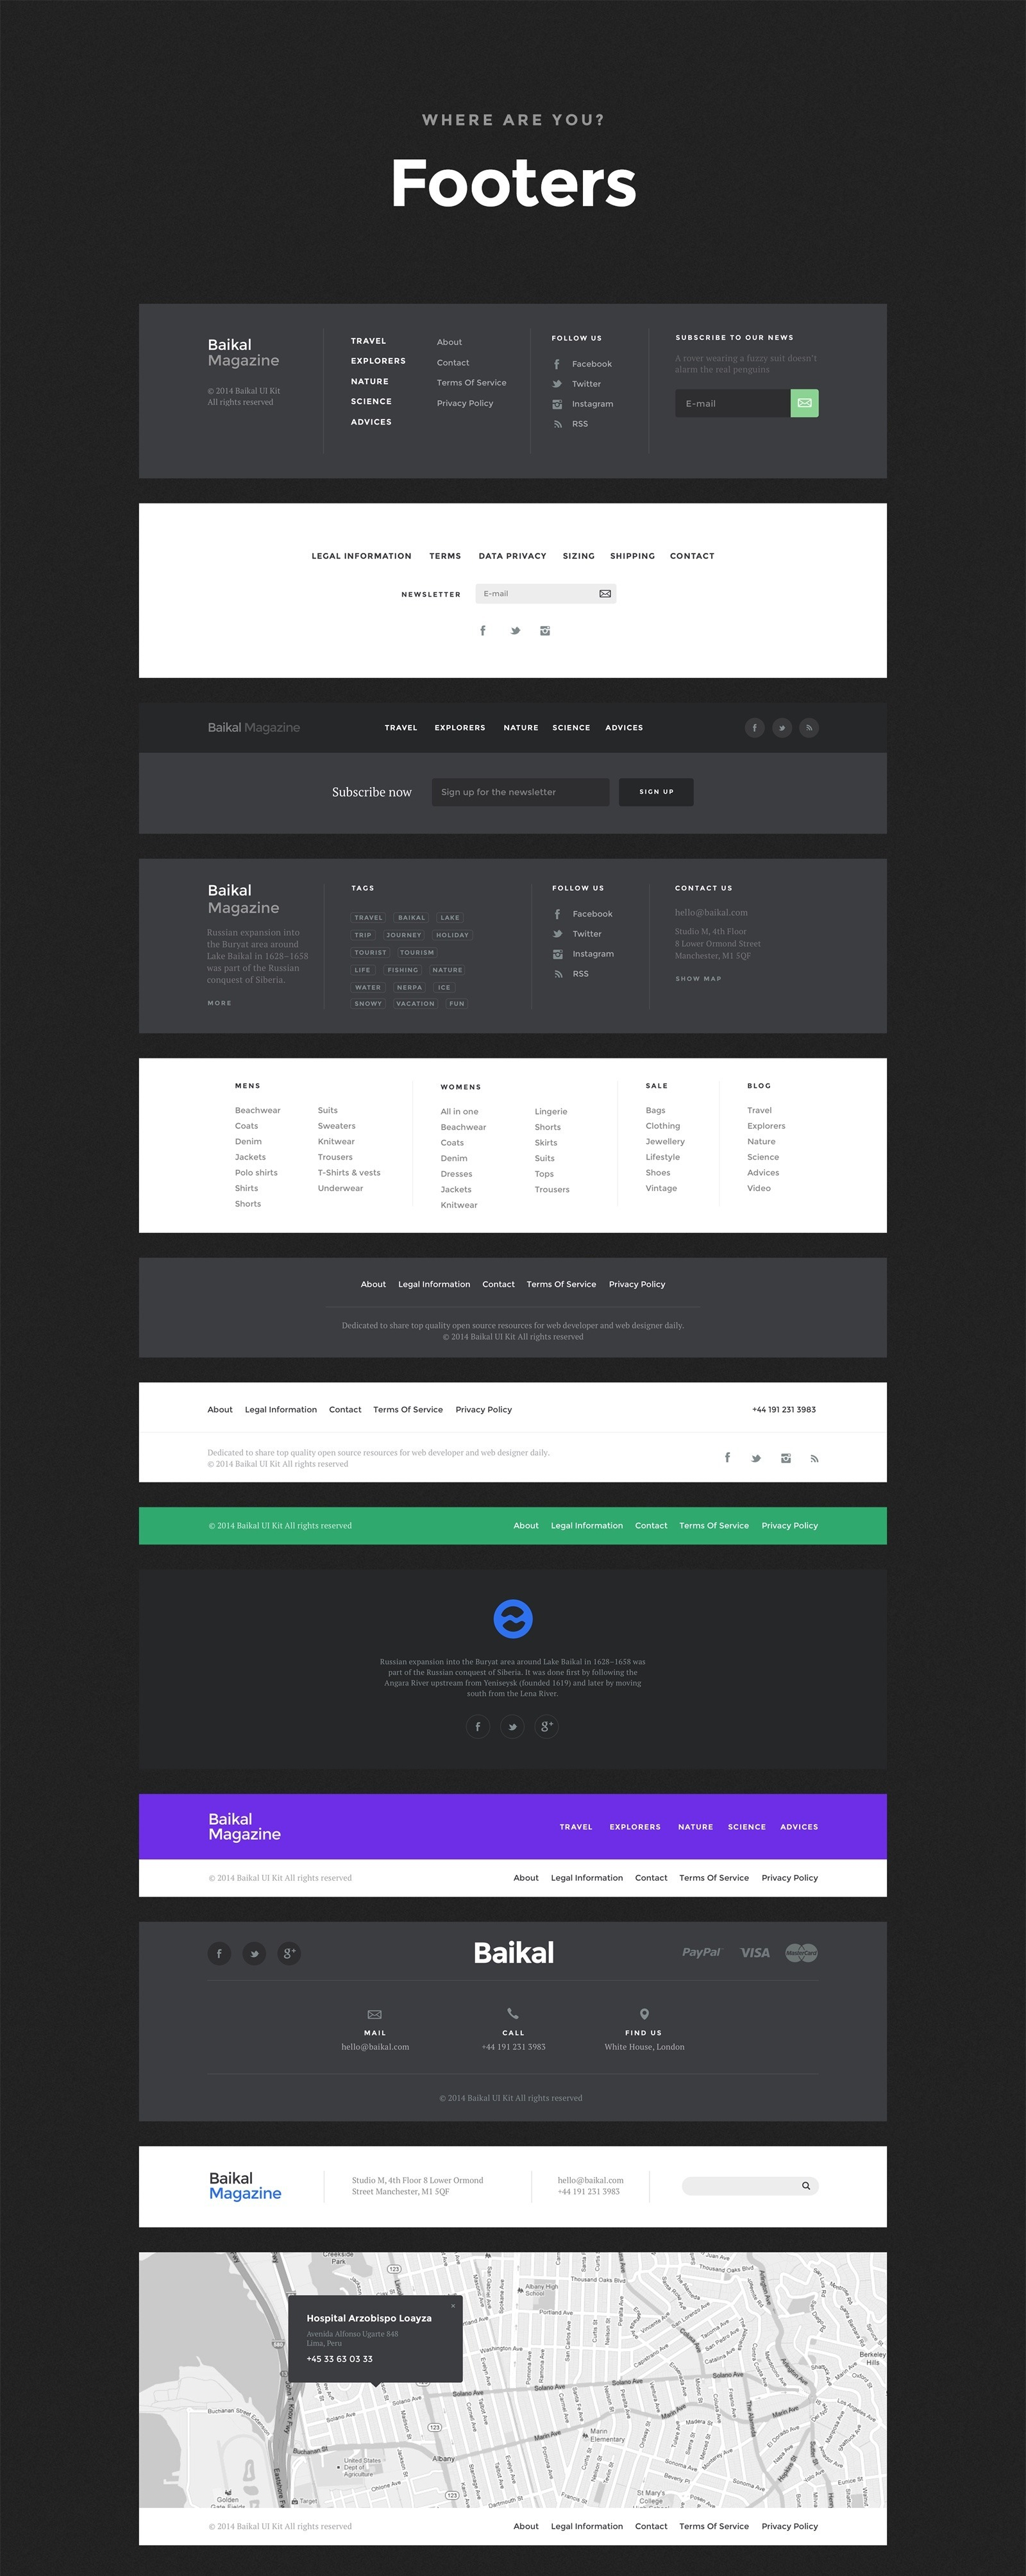 11 Footers - Baikal UI Kit - Huge Set Of UI Components